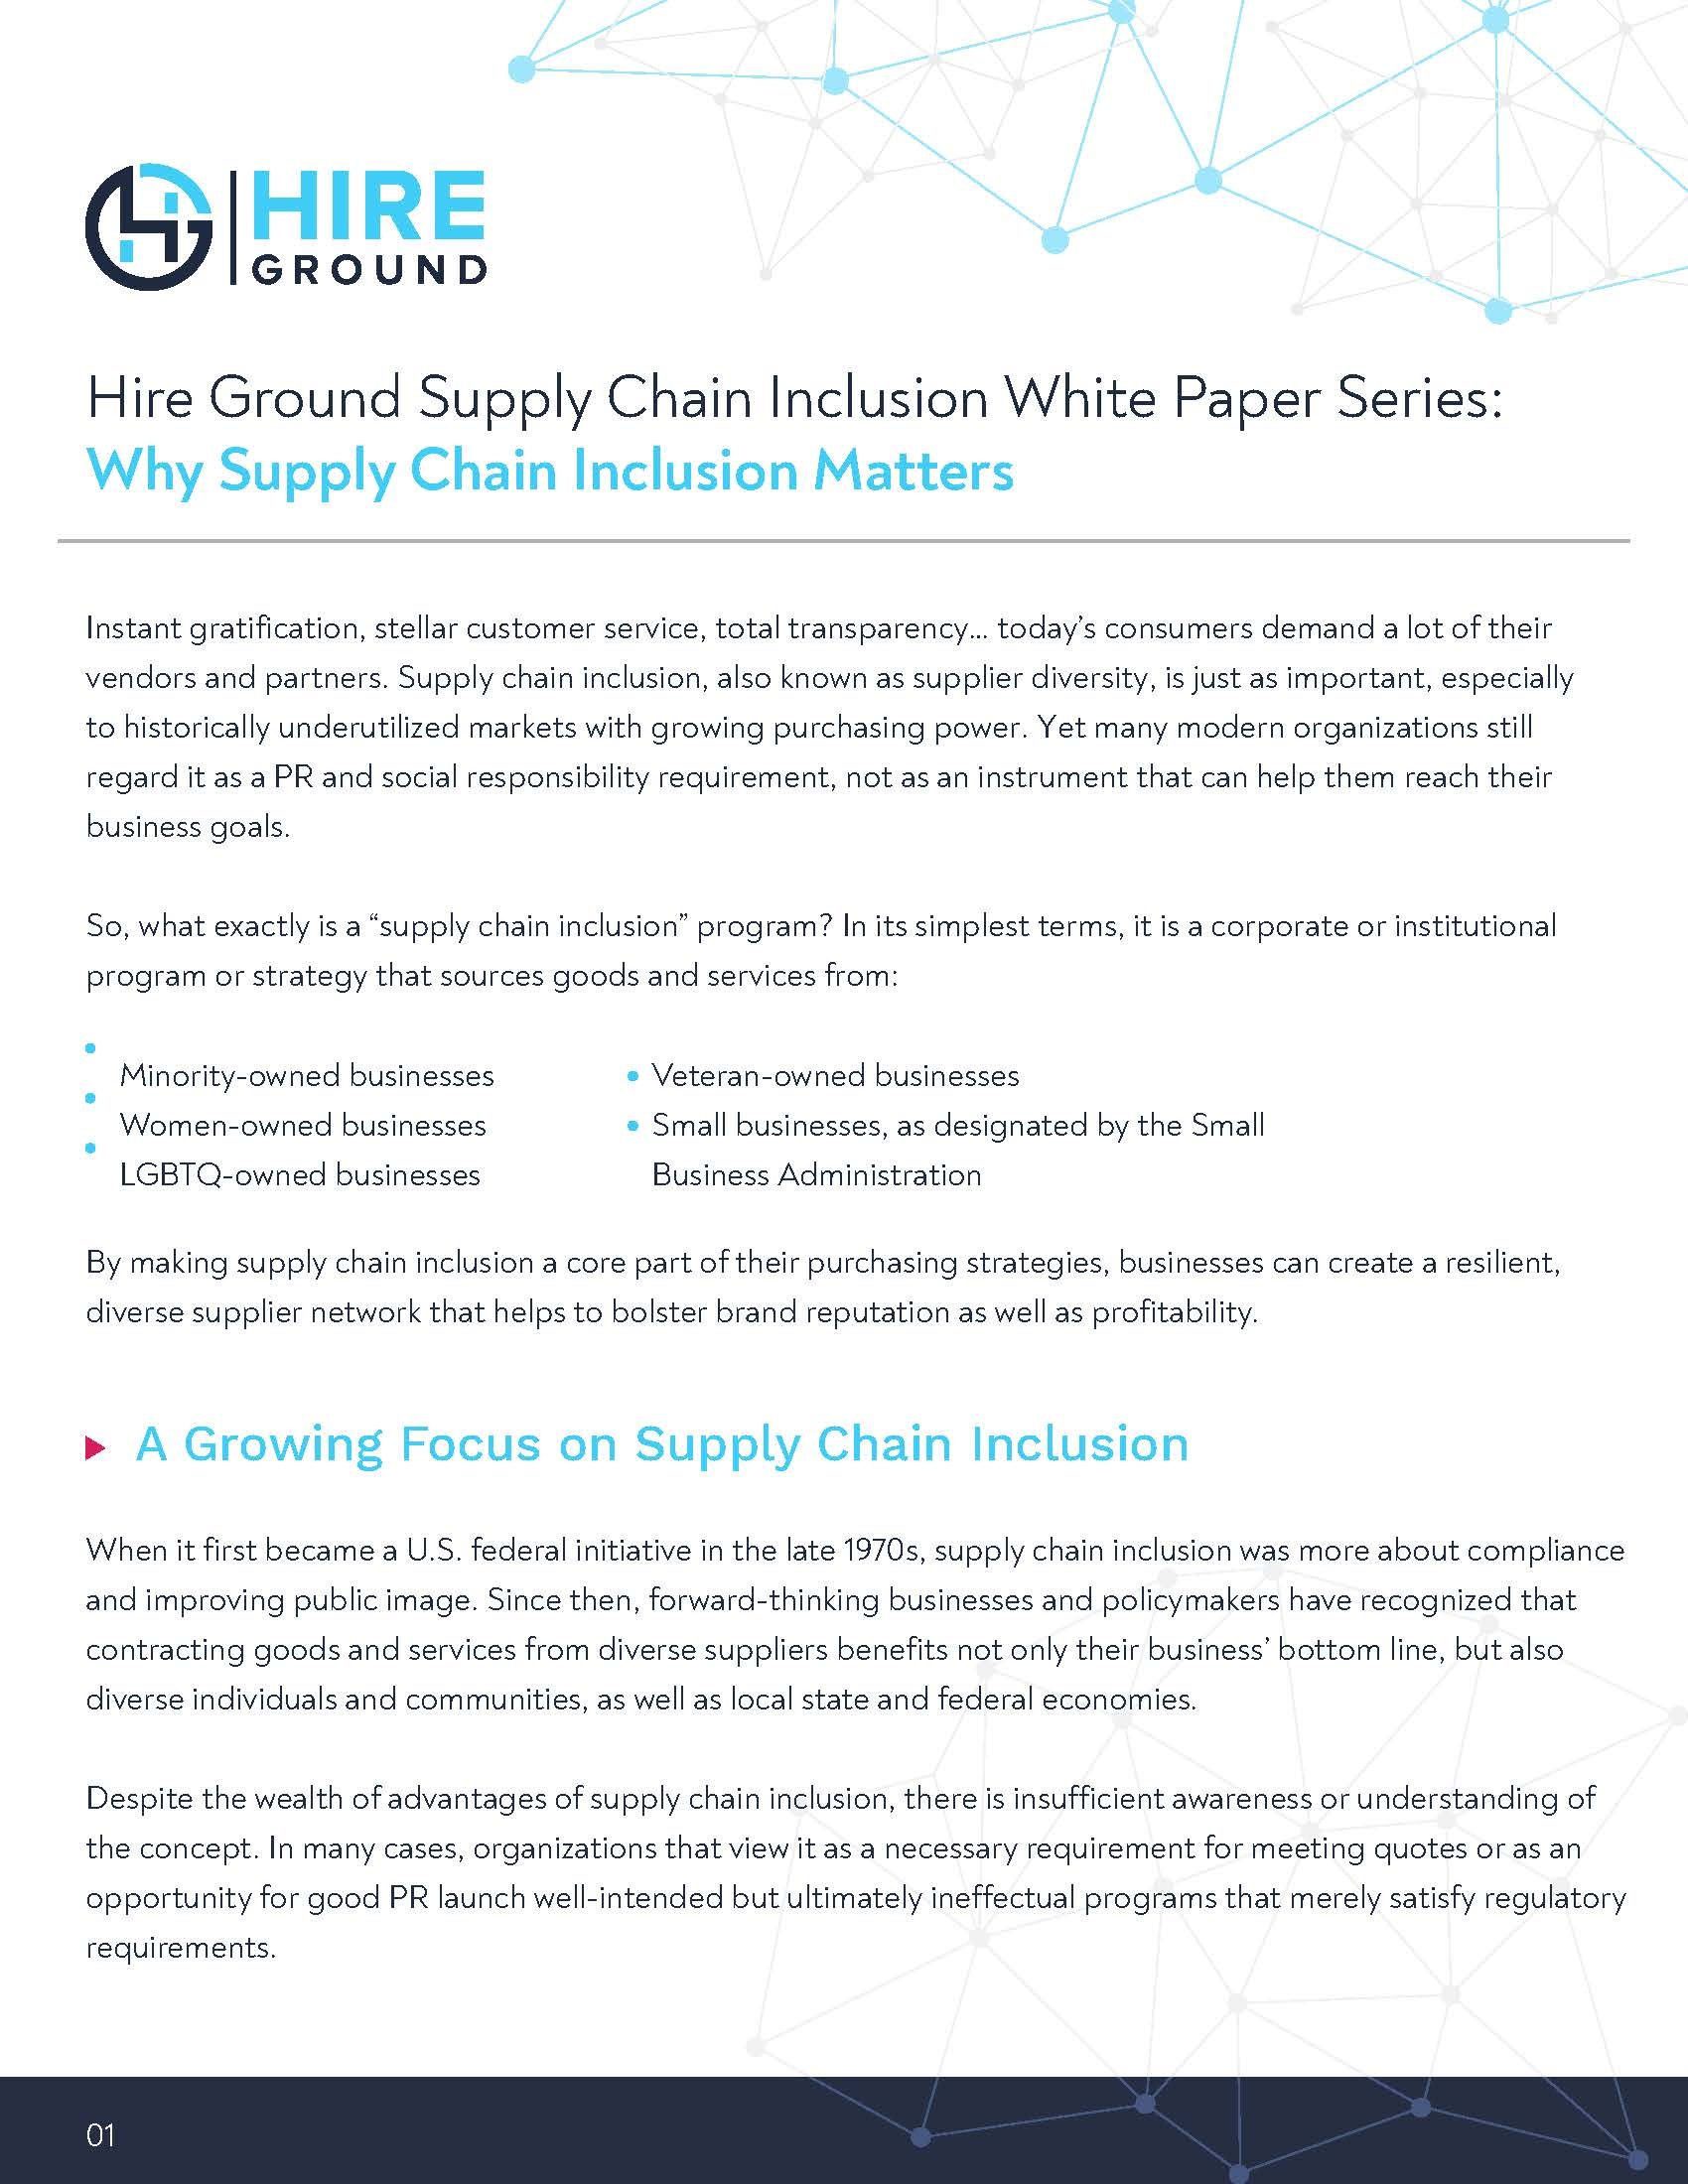 Hire Ground Supply Chain Inclusion White Paper Series Why Supply Chain Inclusion Matters v2.3 (1)_Page_1